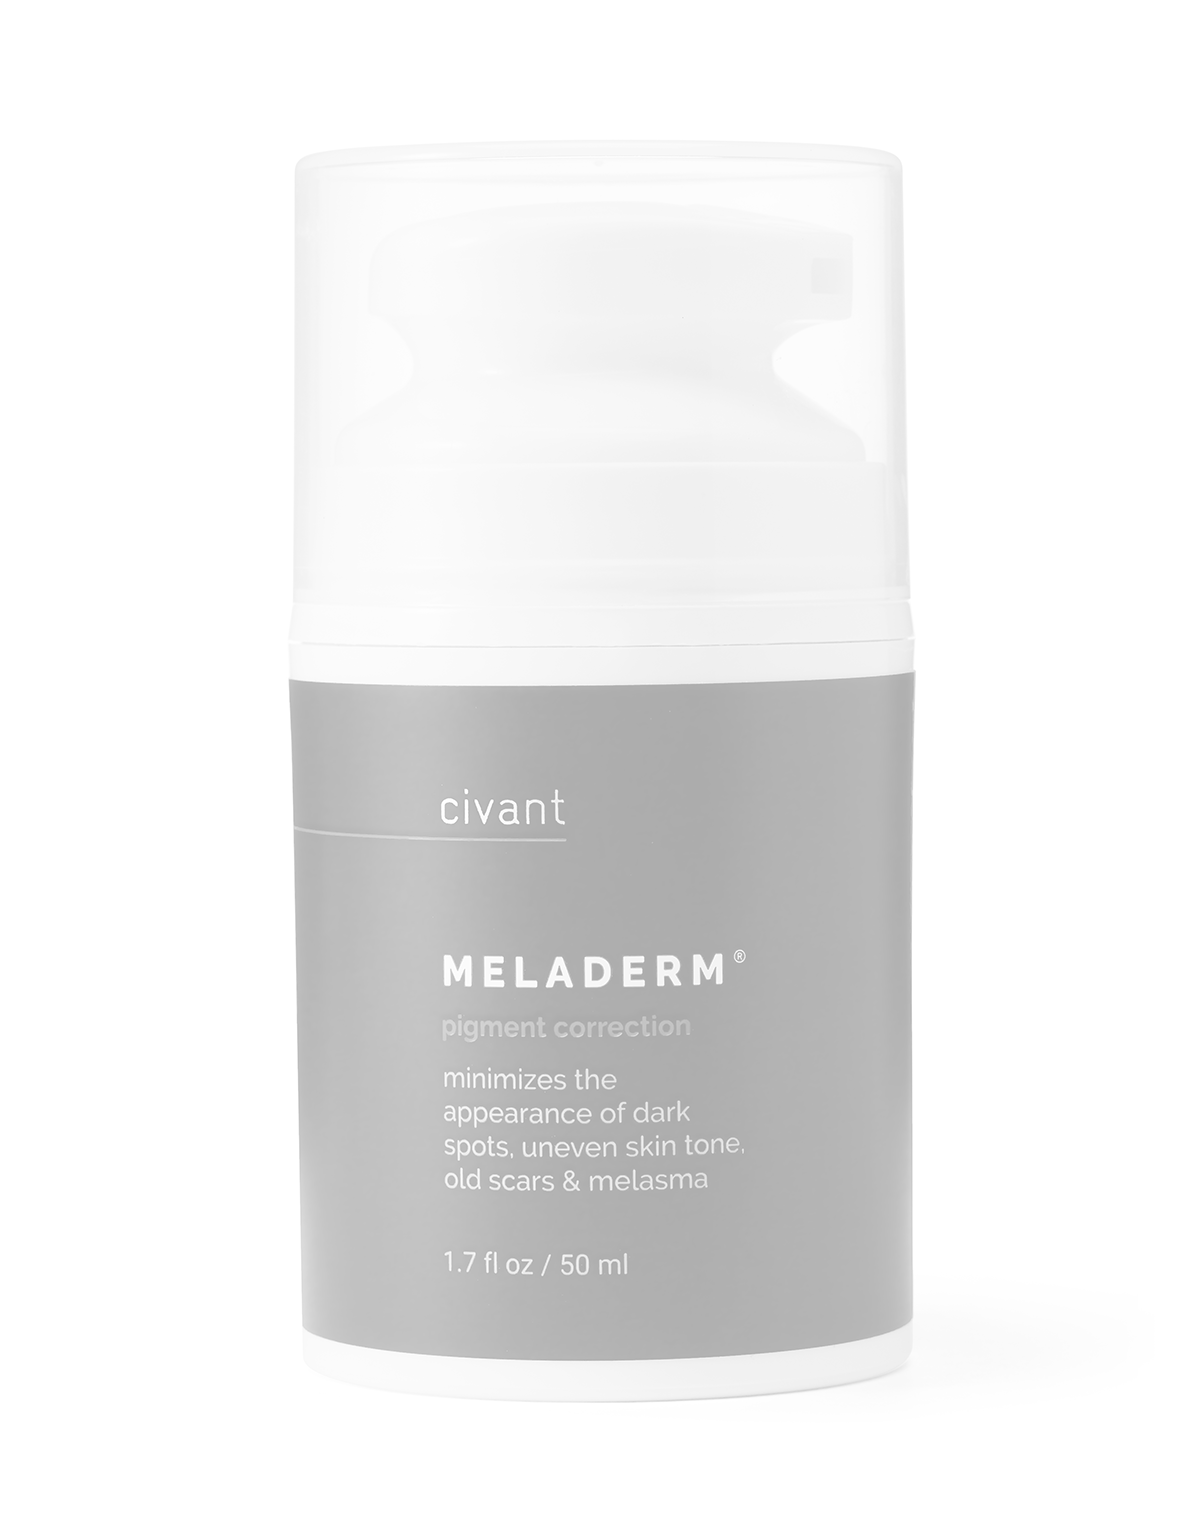 Meladerm